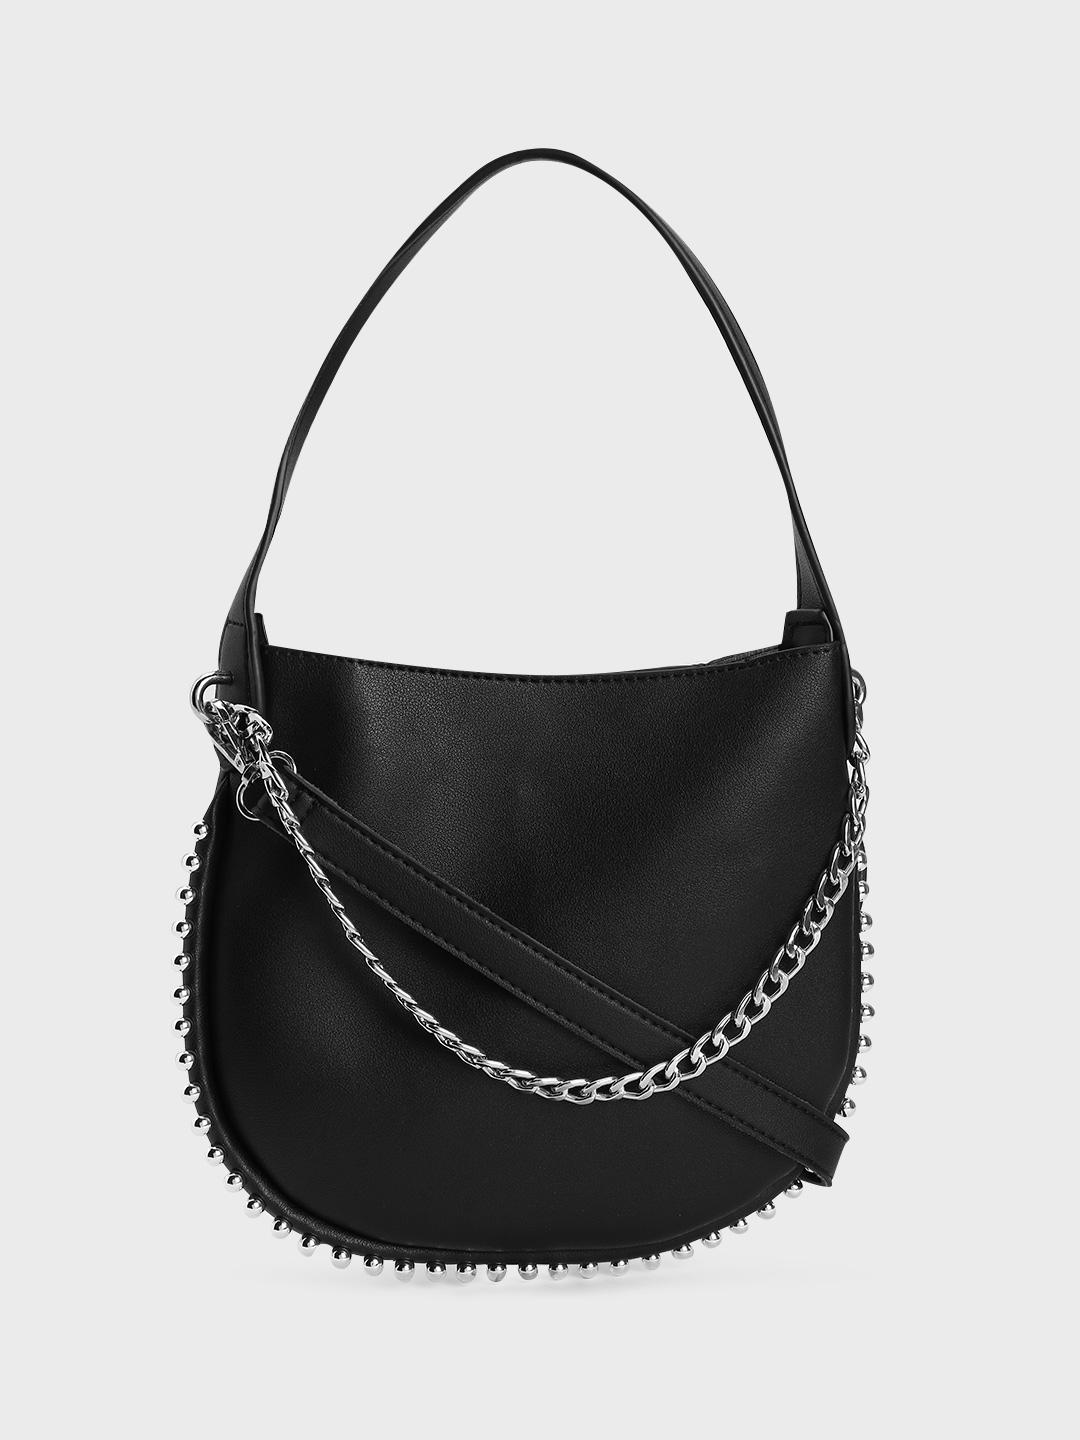 Origami Lily Black Chain Studded Tote Bag 1